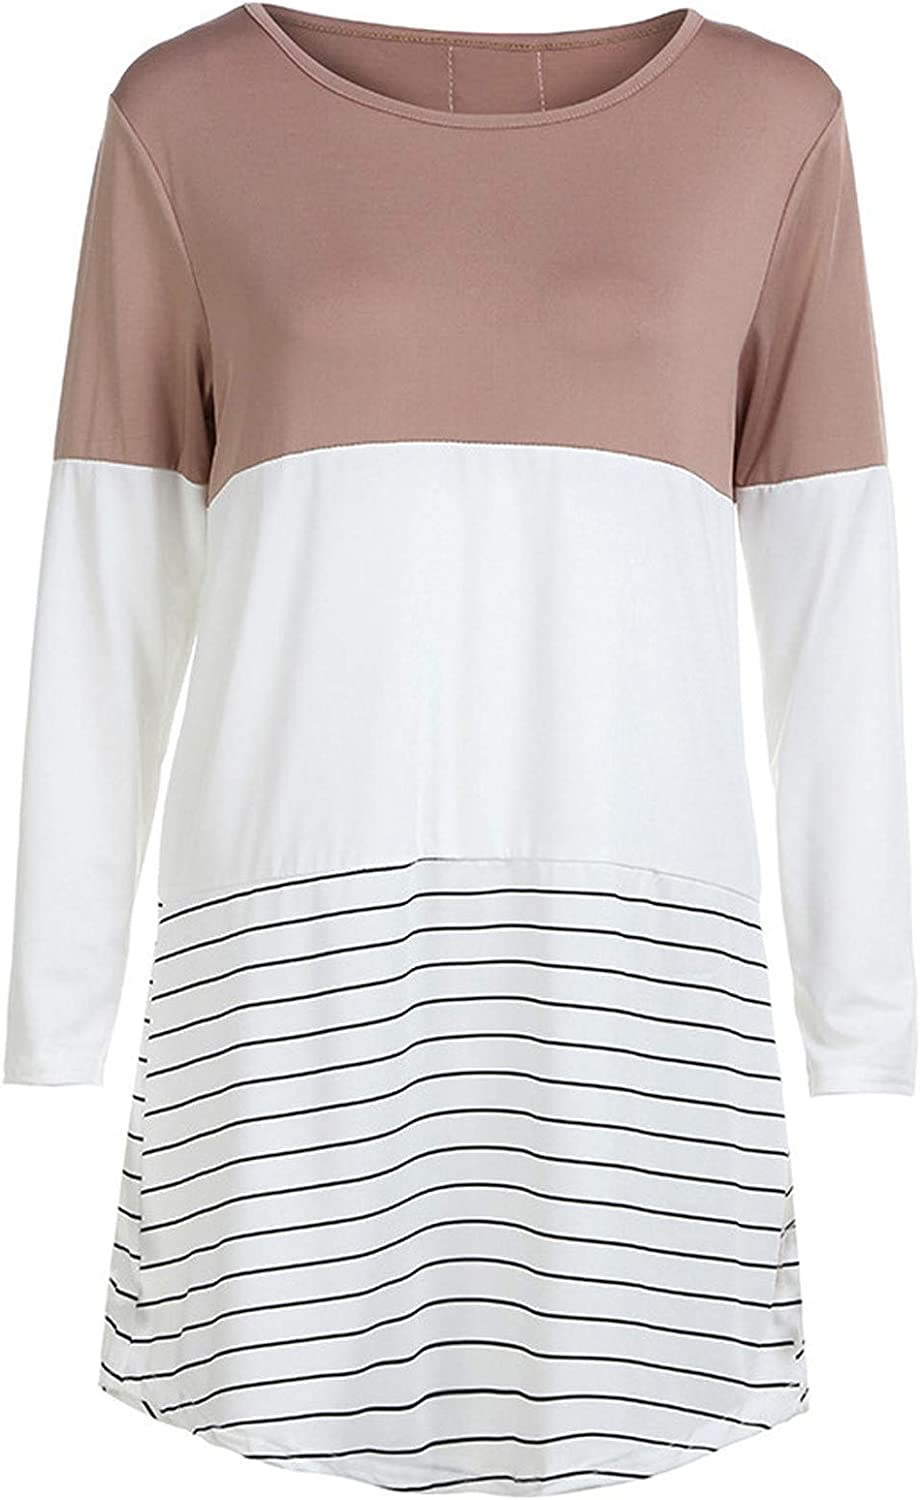 Hesxuno Valentines Day Gifts Women's Fashion Long Sleeve Lace Back Color Block Stripe Tops T-Shirts Blouses Sweatershirt